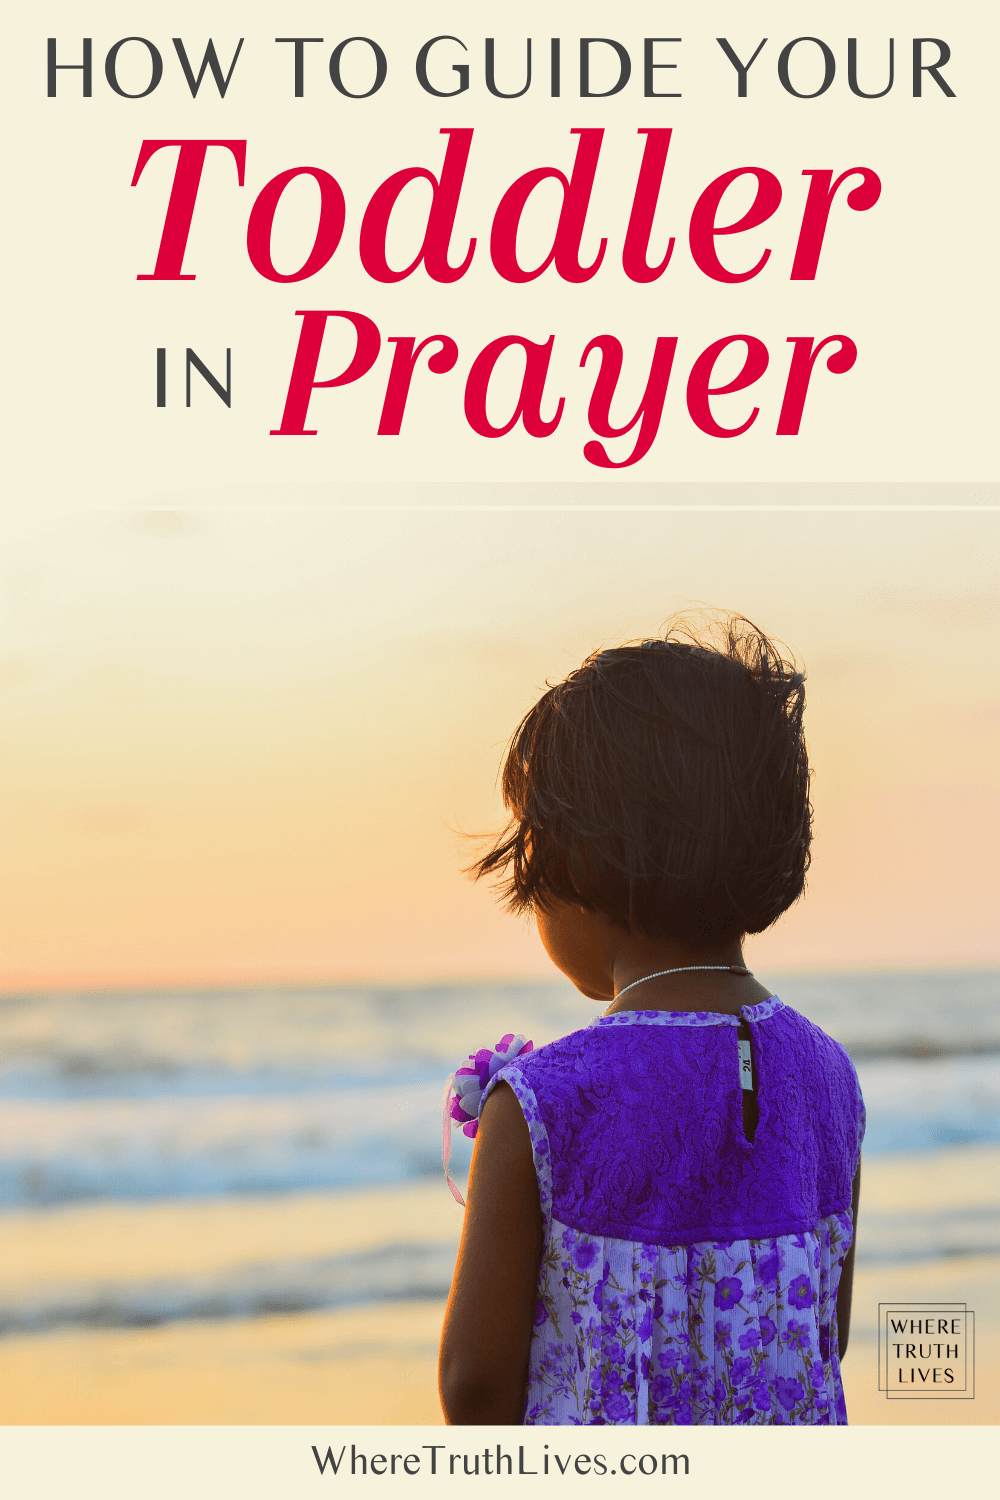 Toddler prayer is wonderful! Here are 3 key principles that will help you pray with your toddler, plus some free printable sample prayers...